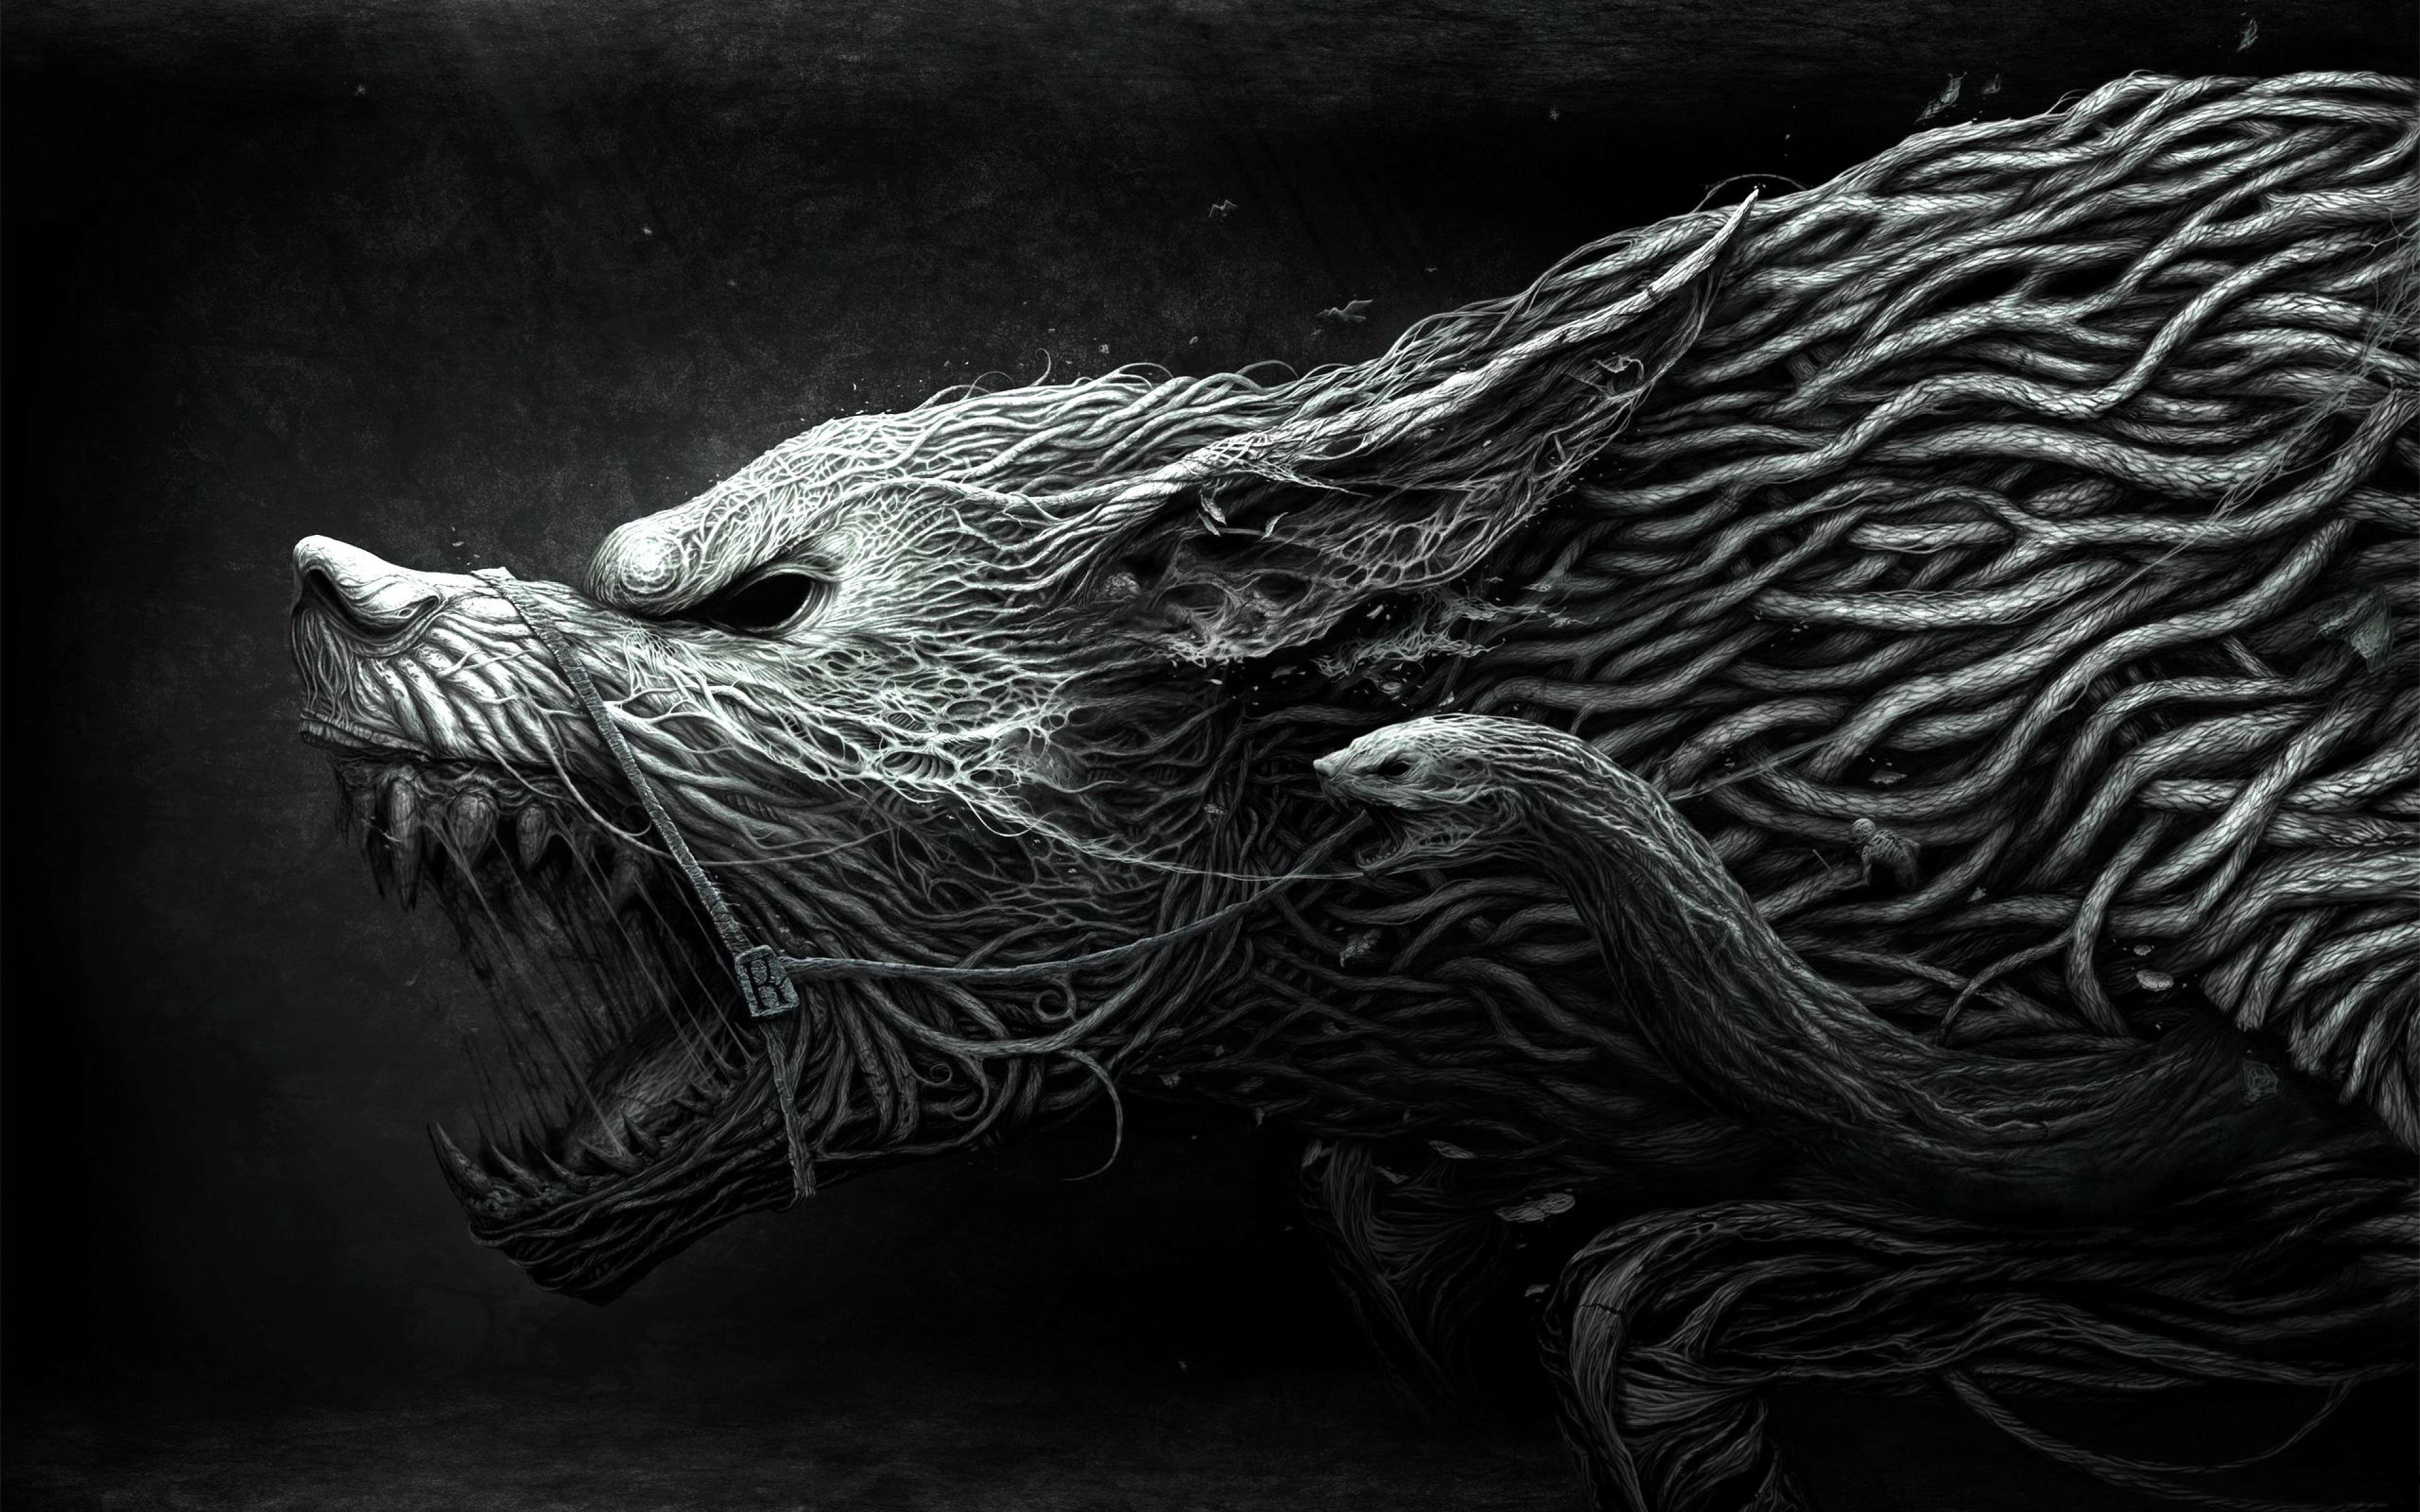 Drawing Aggression Black White Wallpaper Background Ultra HD 4K 3840x2400